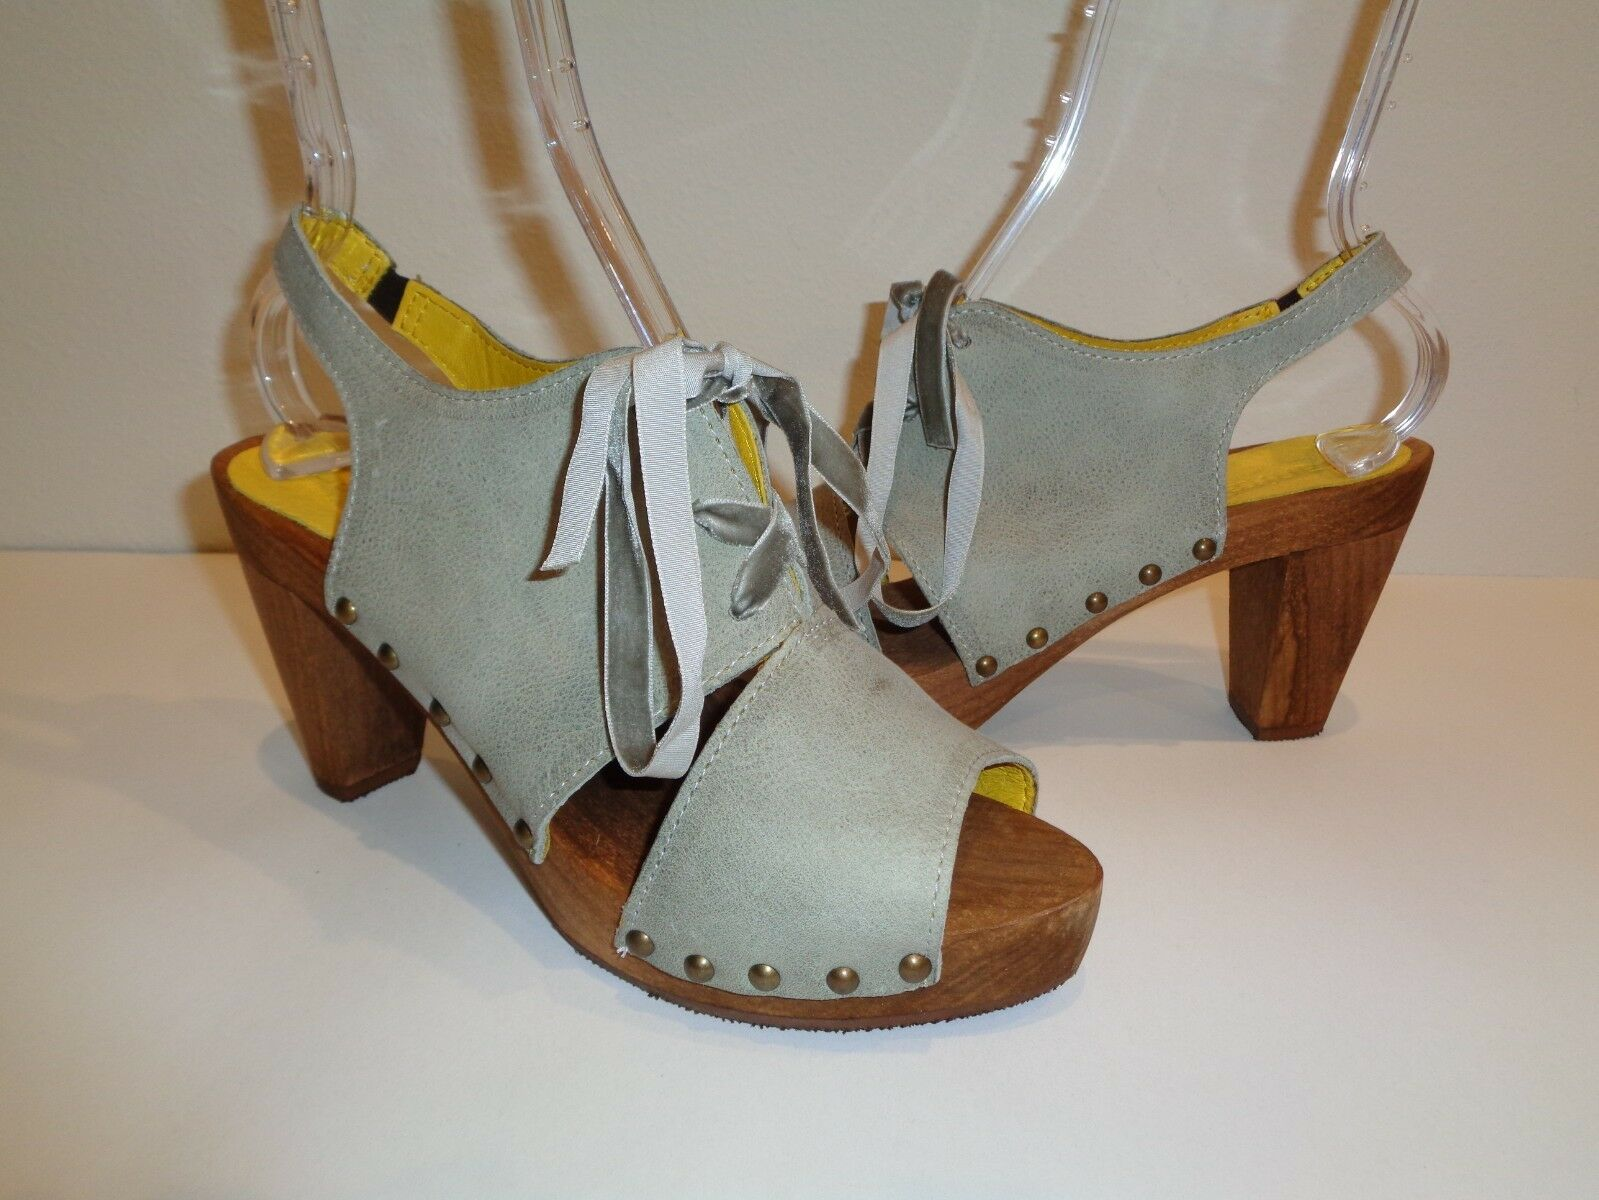 Sanita Size 6.5 Eur 37 SPICA SPICA SPICA PLATEAU Light bluee Leather Sandals New Womens shoes bfefe2